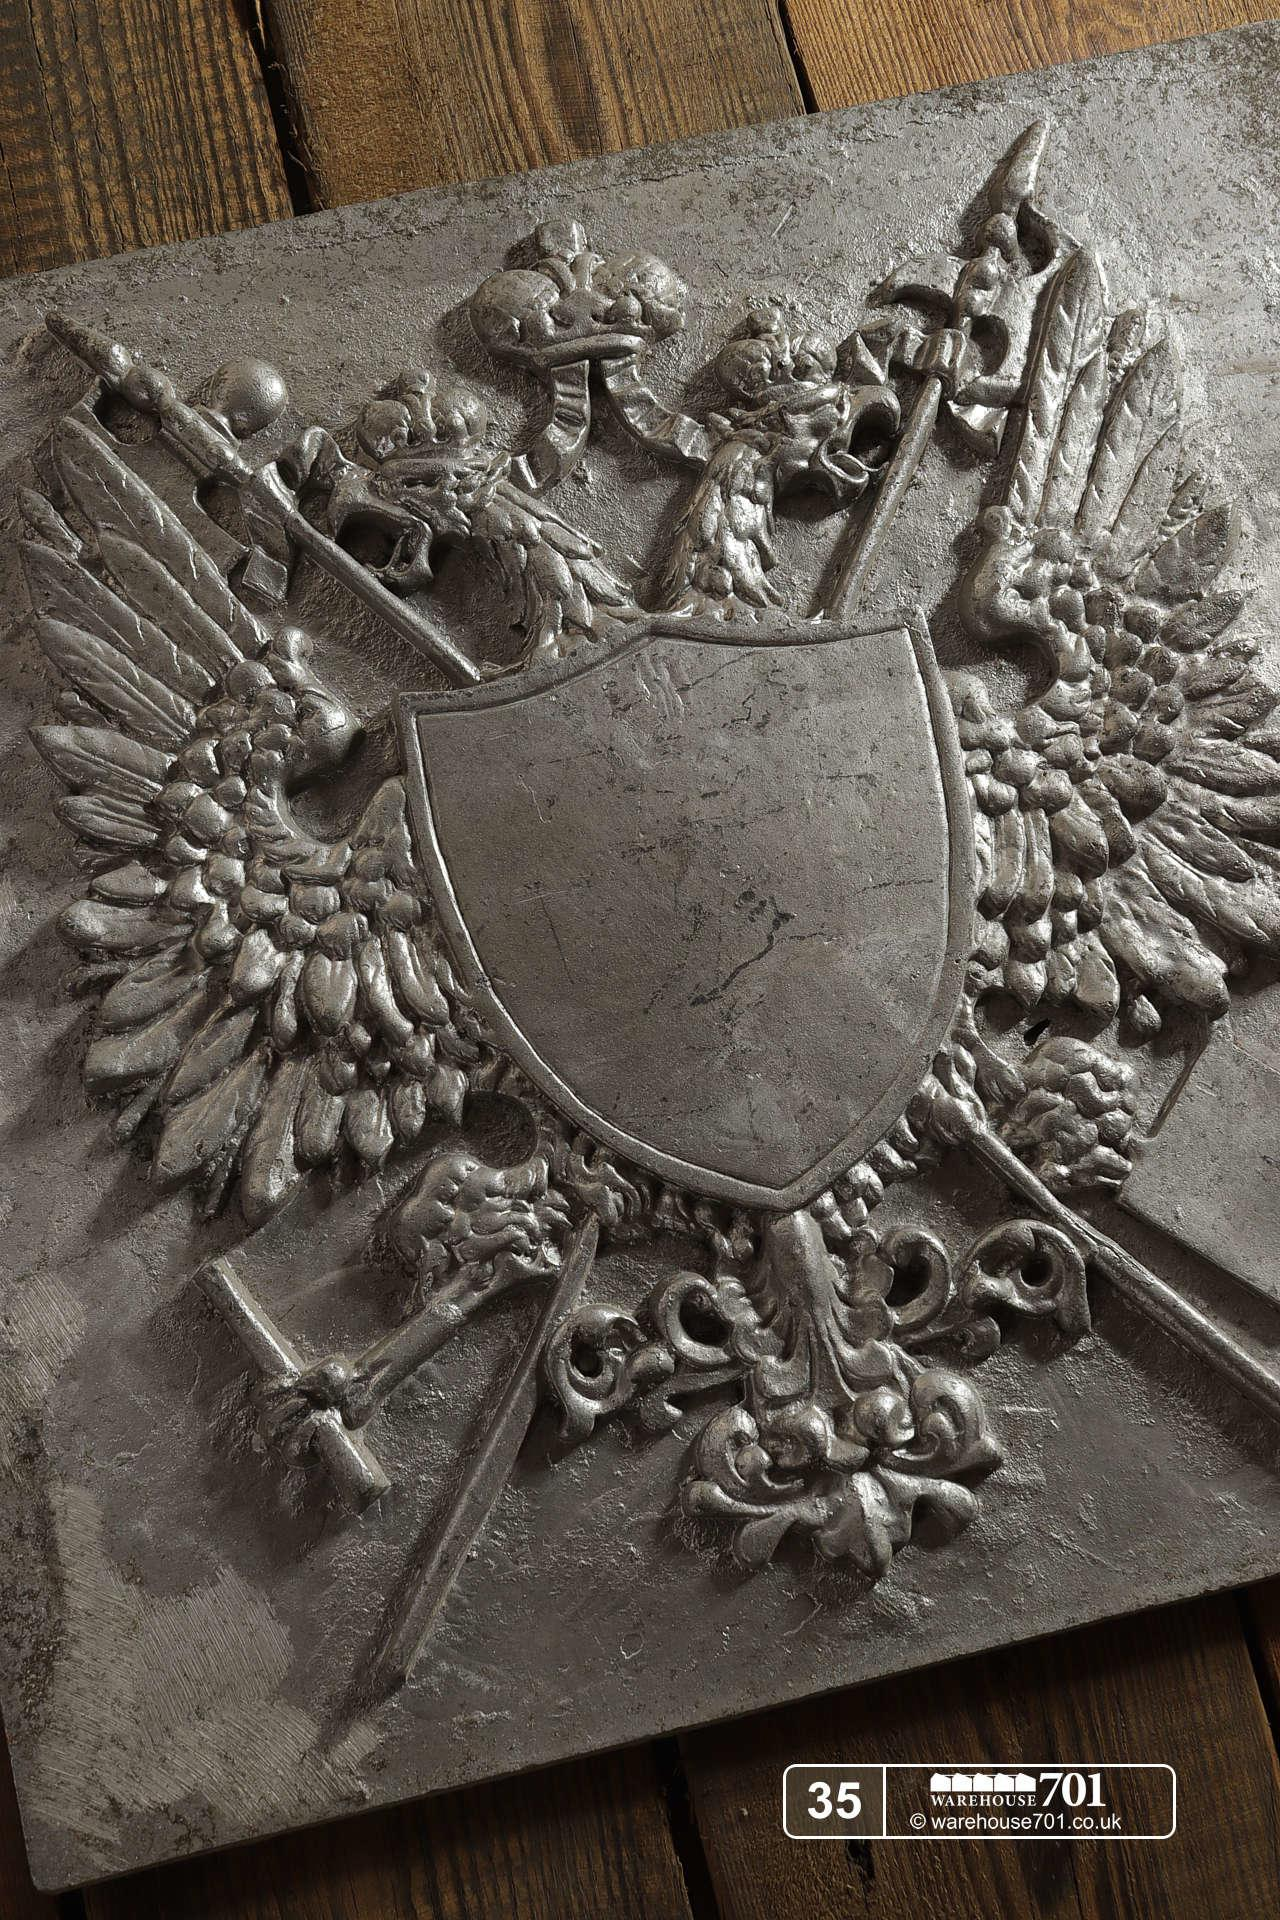 Aluminium Foundry Castings of Heraldic Crests (No's 35, 36, 37) for Shop, Retail and Home Display #4